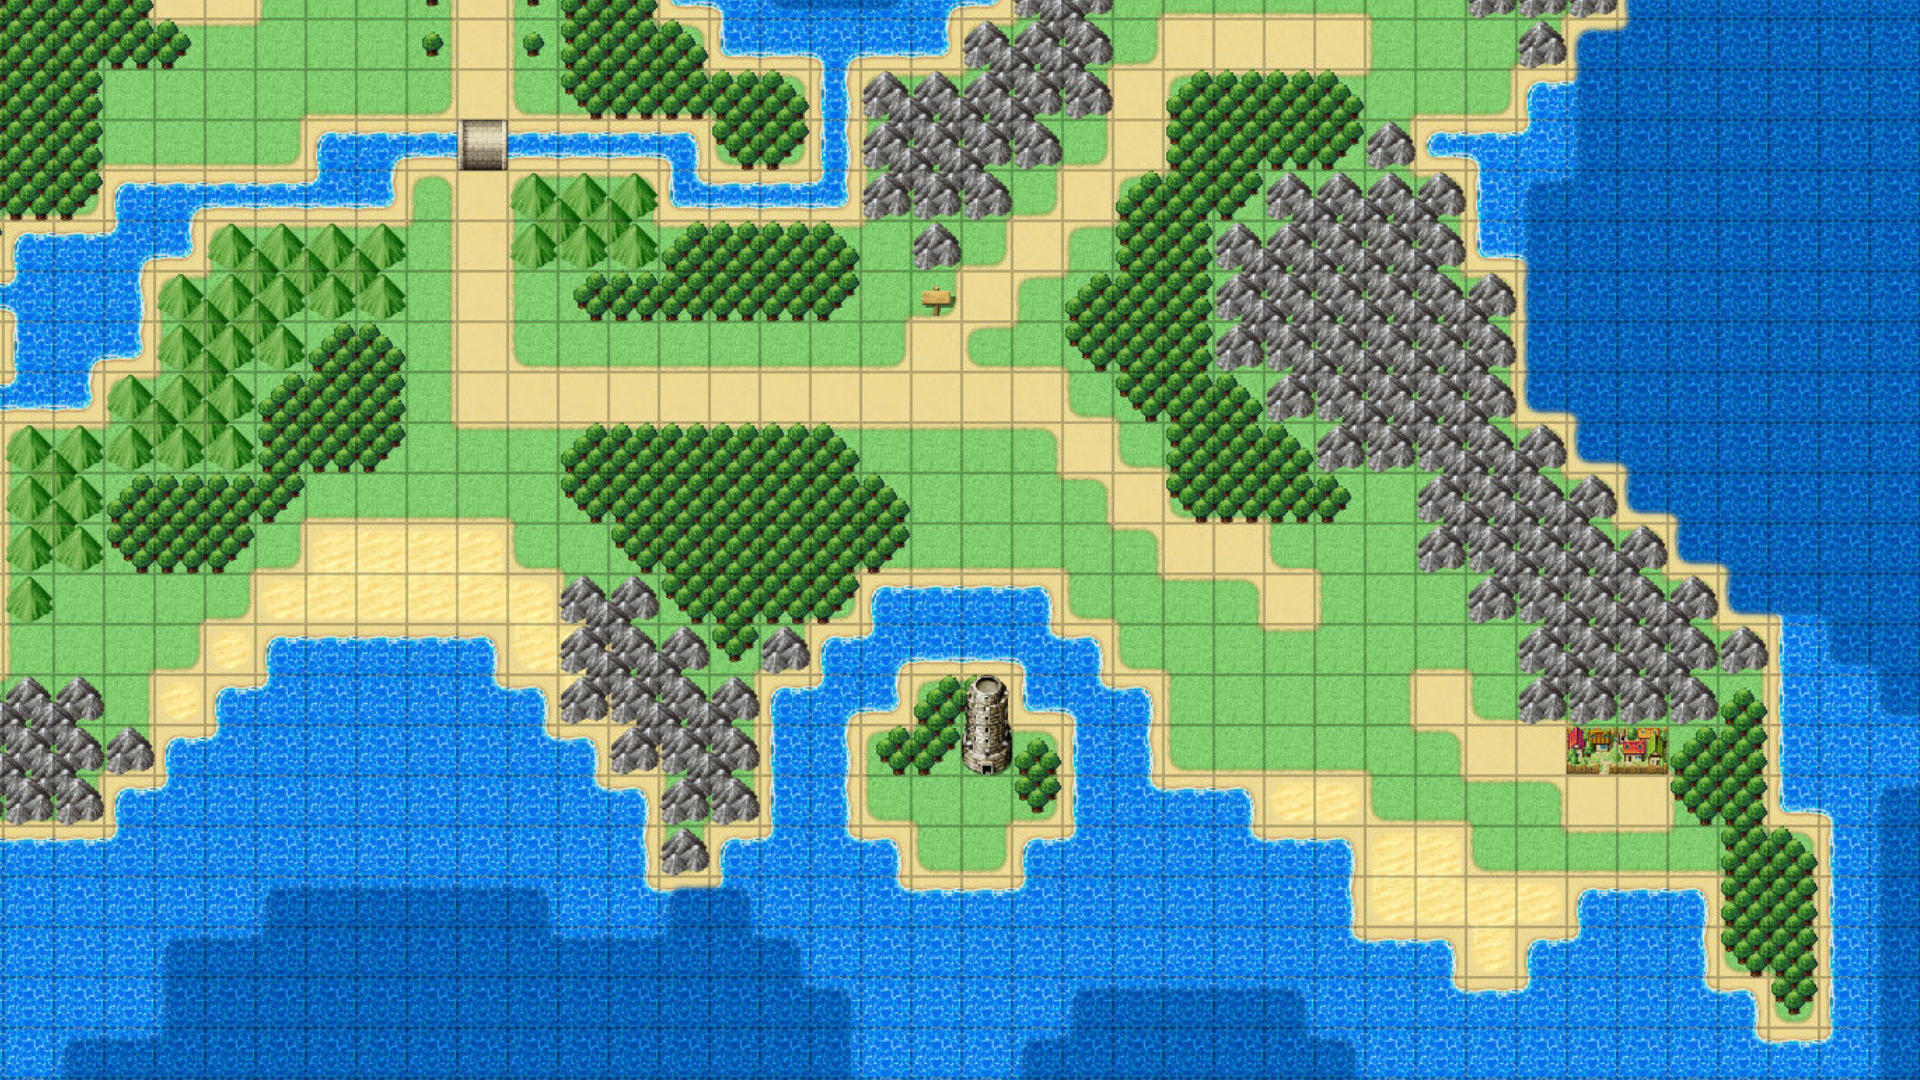 Overhead view of a pixel-based world map